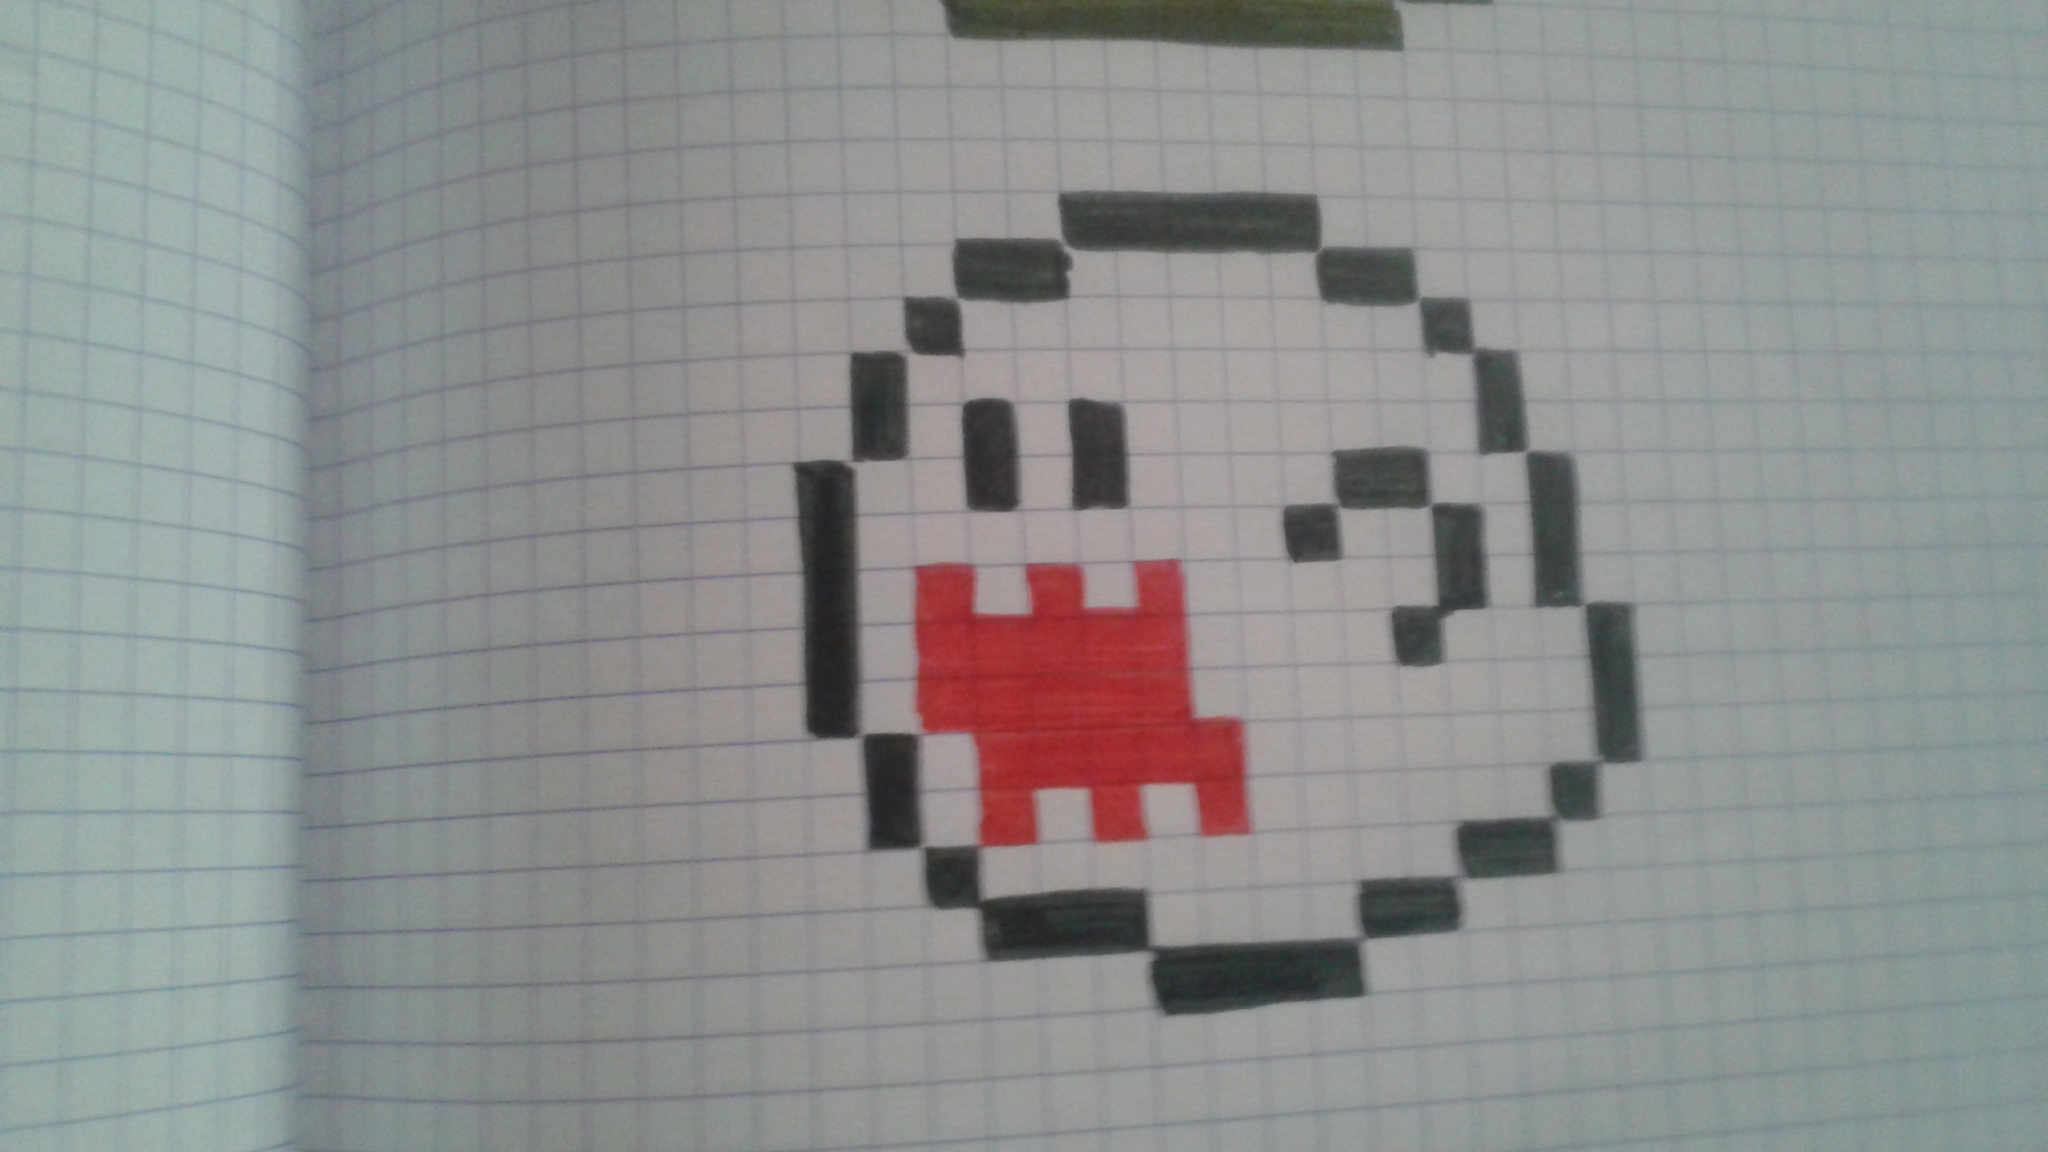 Pixel Art Facile à Faire Panda